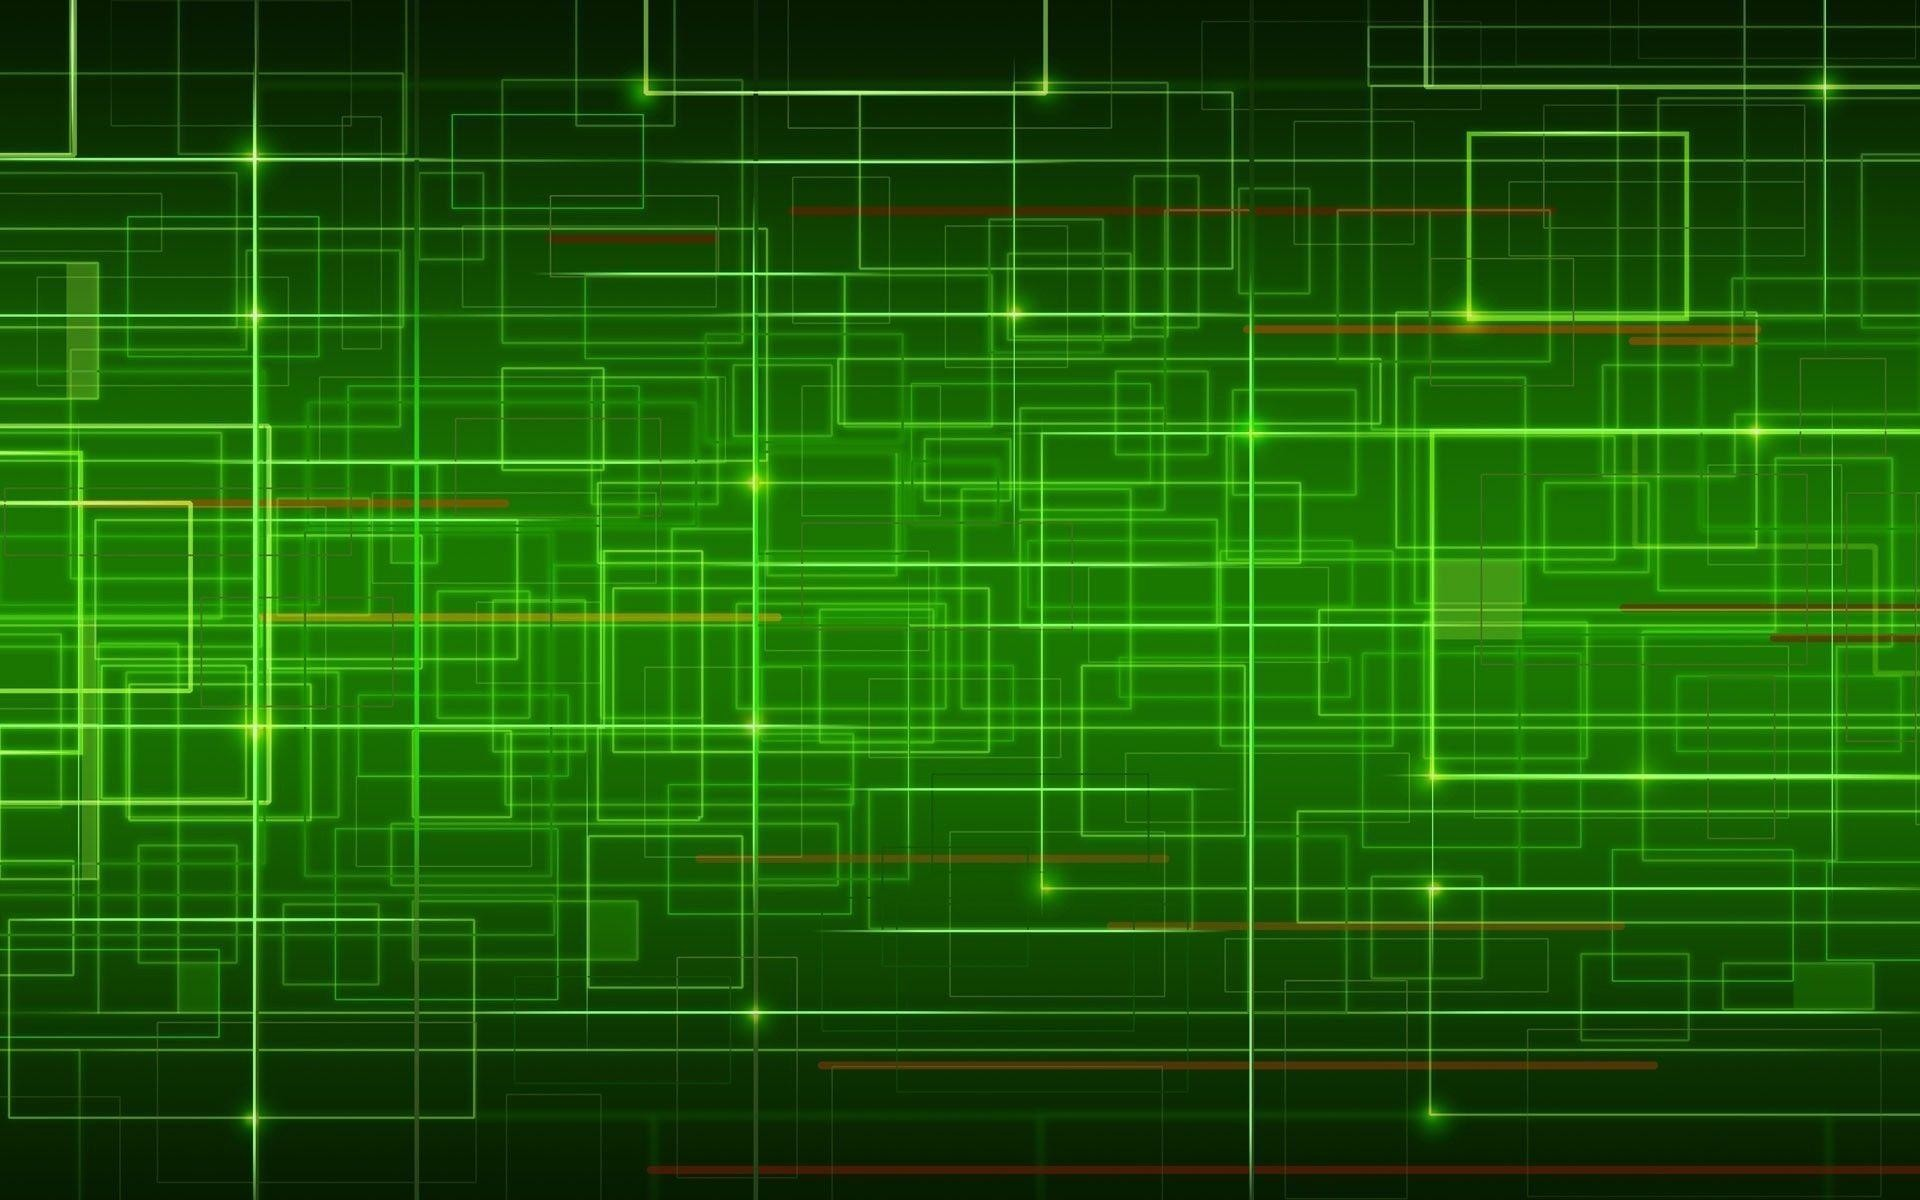 1920x1200 Wallpapers For > Neon Green Wallpaper